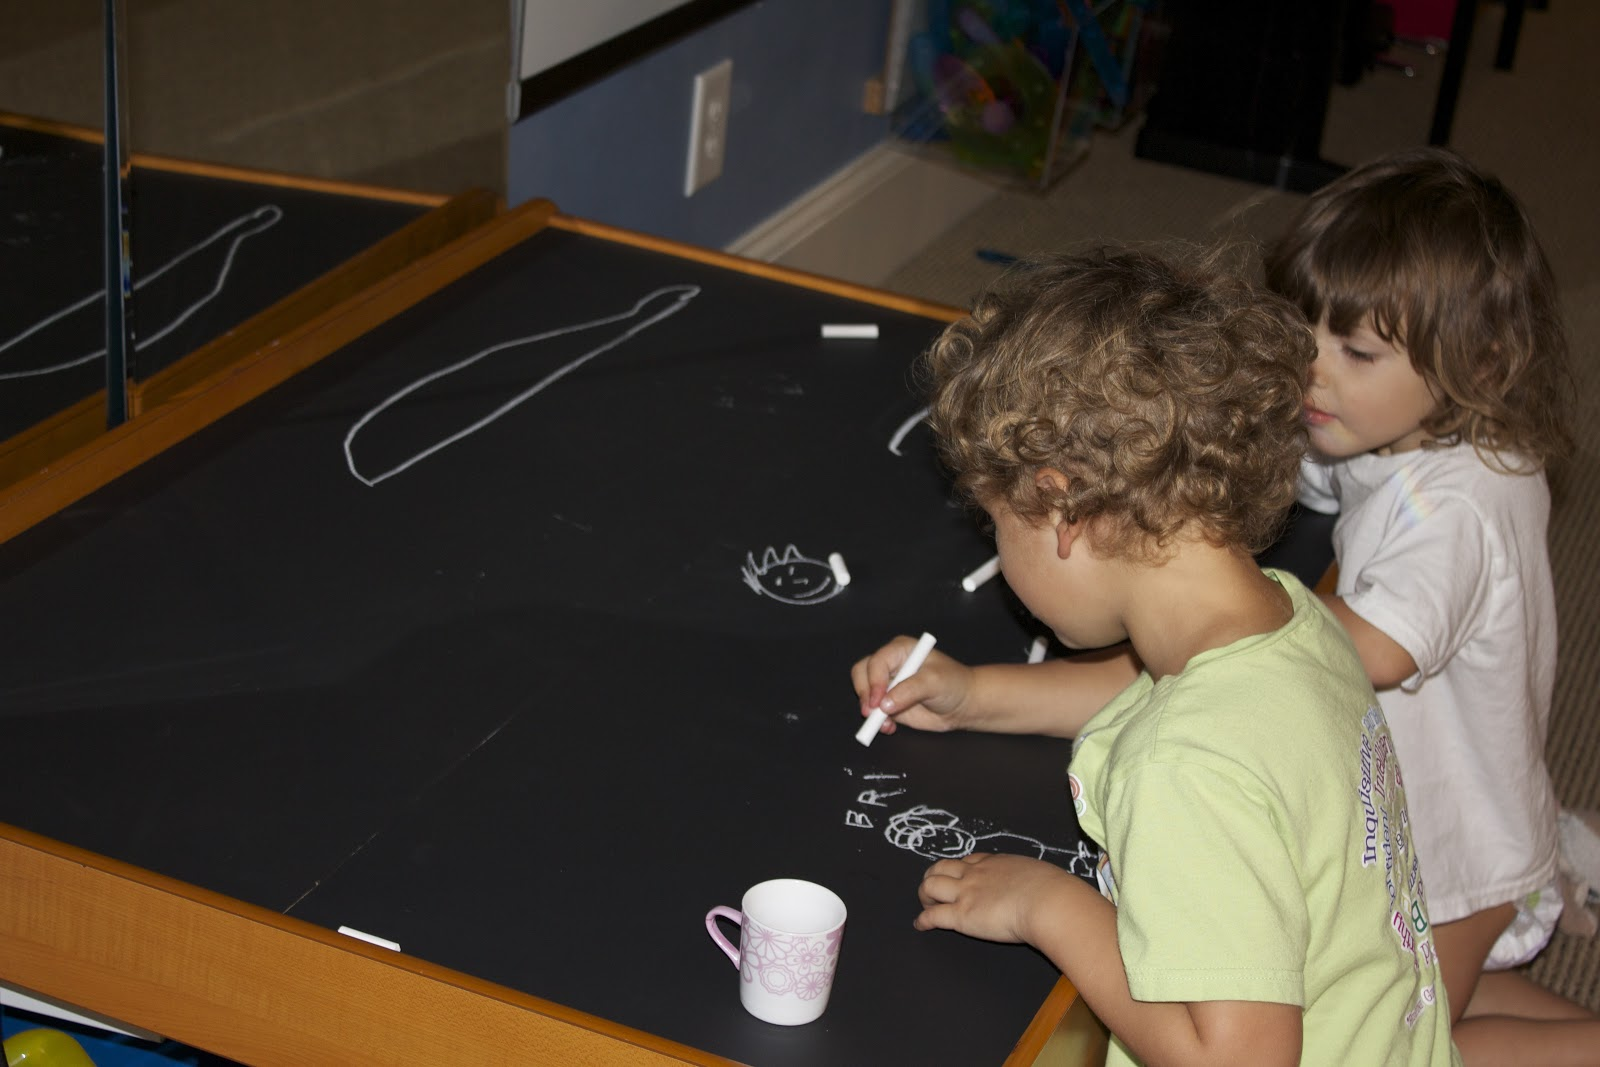 Diy activity table activities for children do it yourself play diy activity table activities for children do it yourself play at home mom solutioingenieria Images